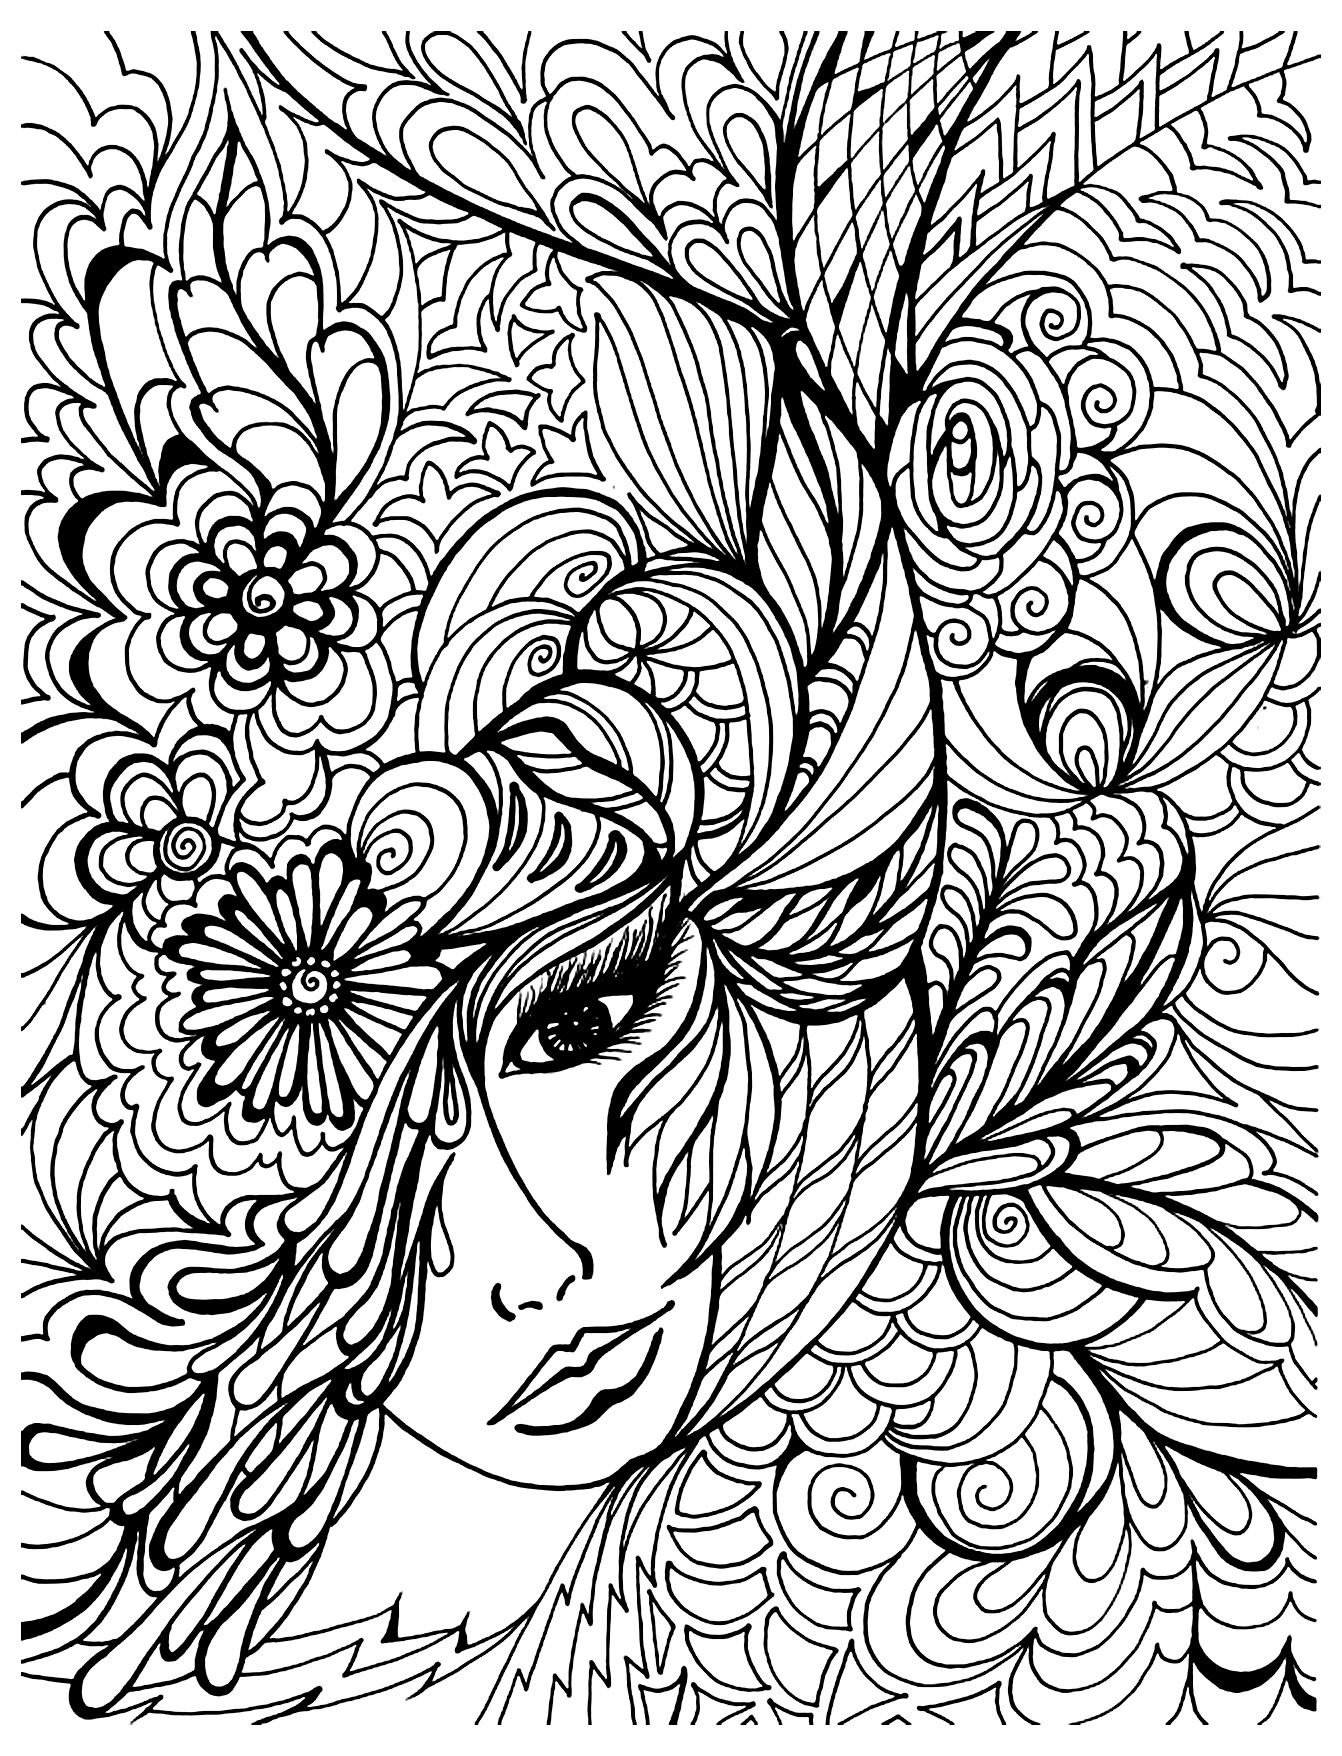 Free printable coloring pages for grown ups - To Print This Free Coloring Page Coloring Face Vegetation Click On